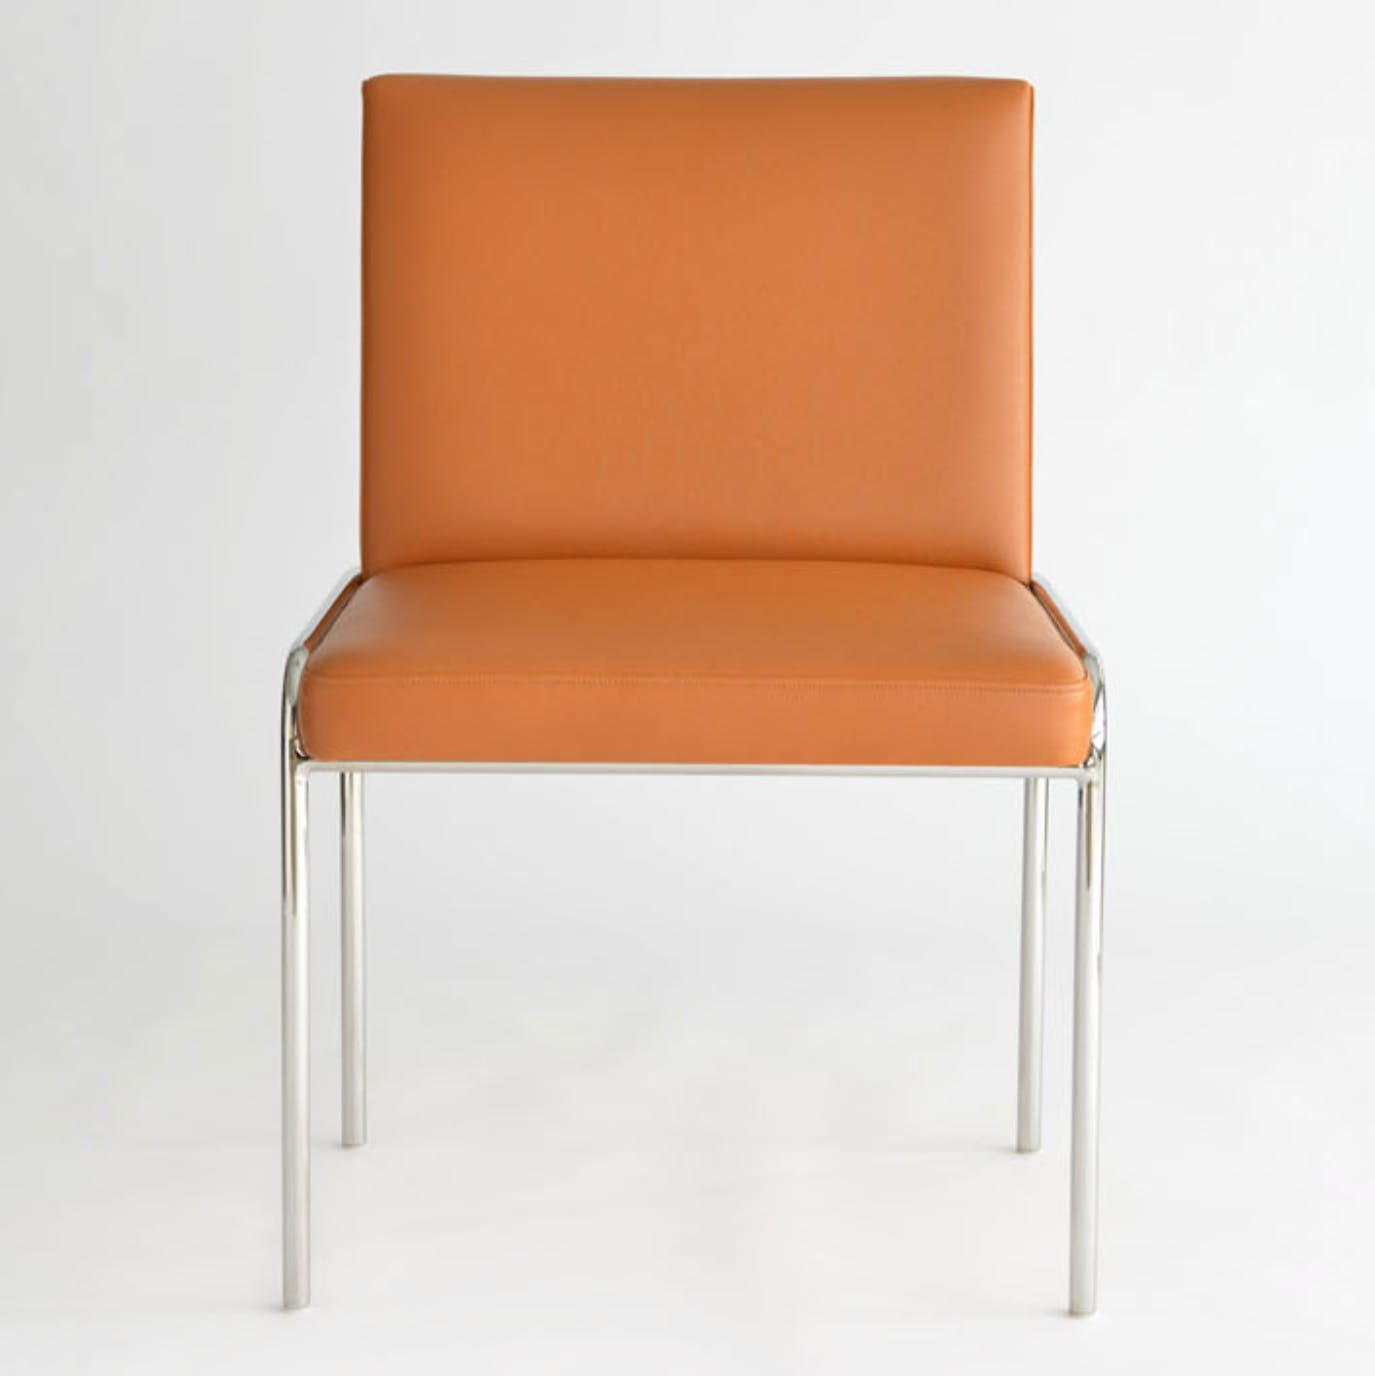 Phase Design Trolley Side Chair Orange Front Haute Living